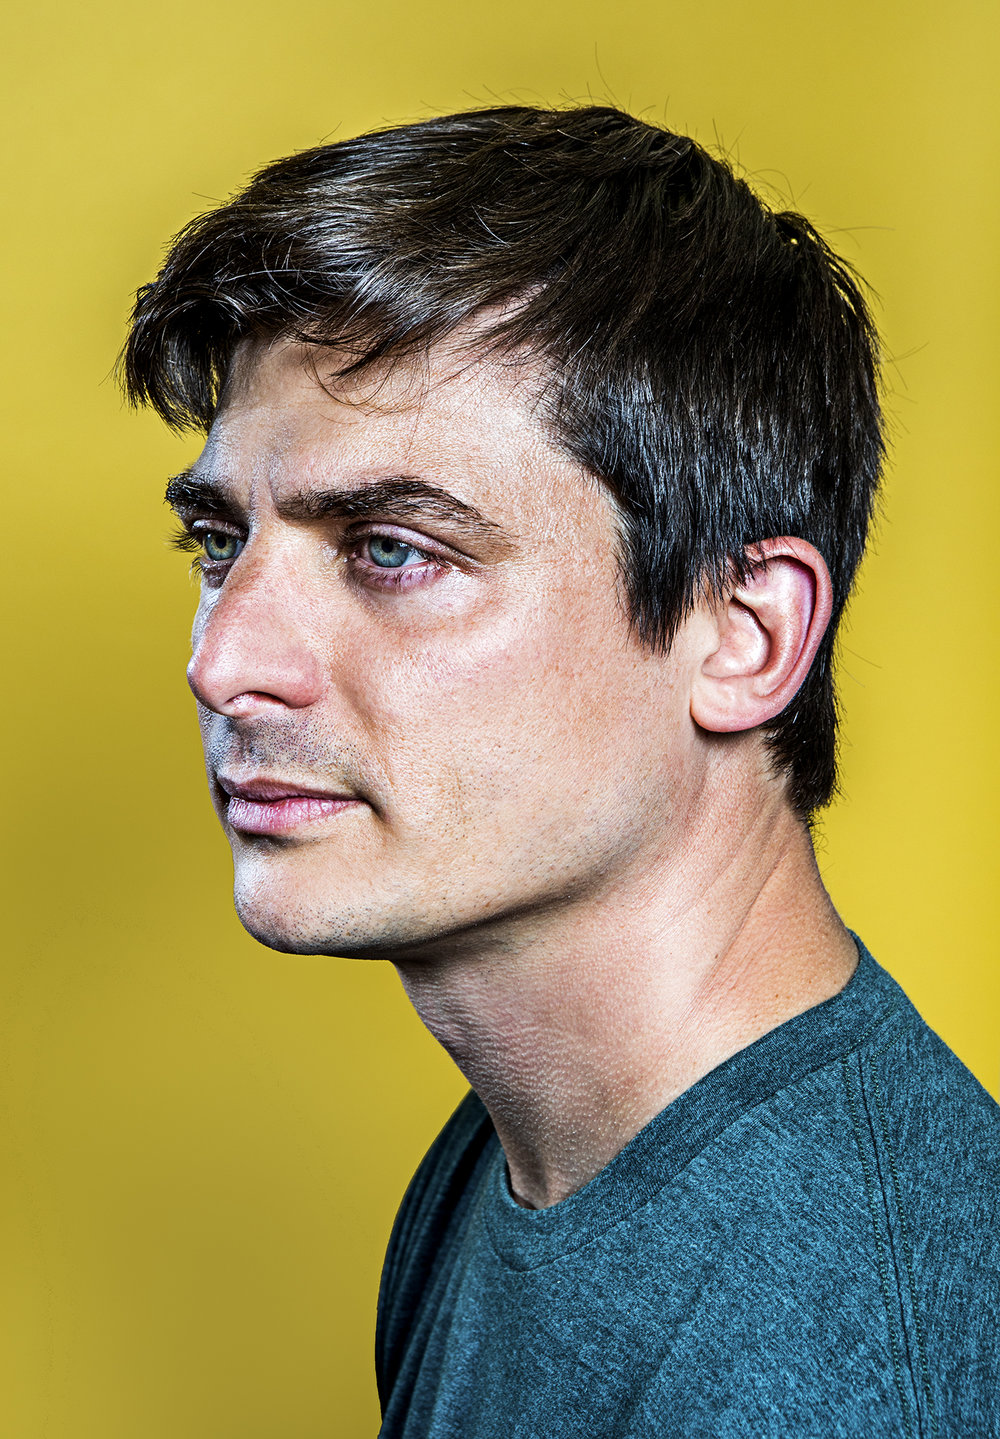 Josh Tetrick, founder of Hampton Creek, for The Atlantic.